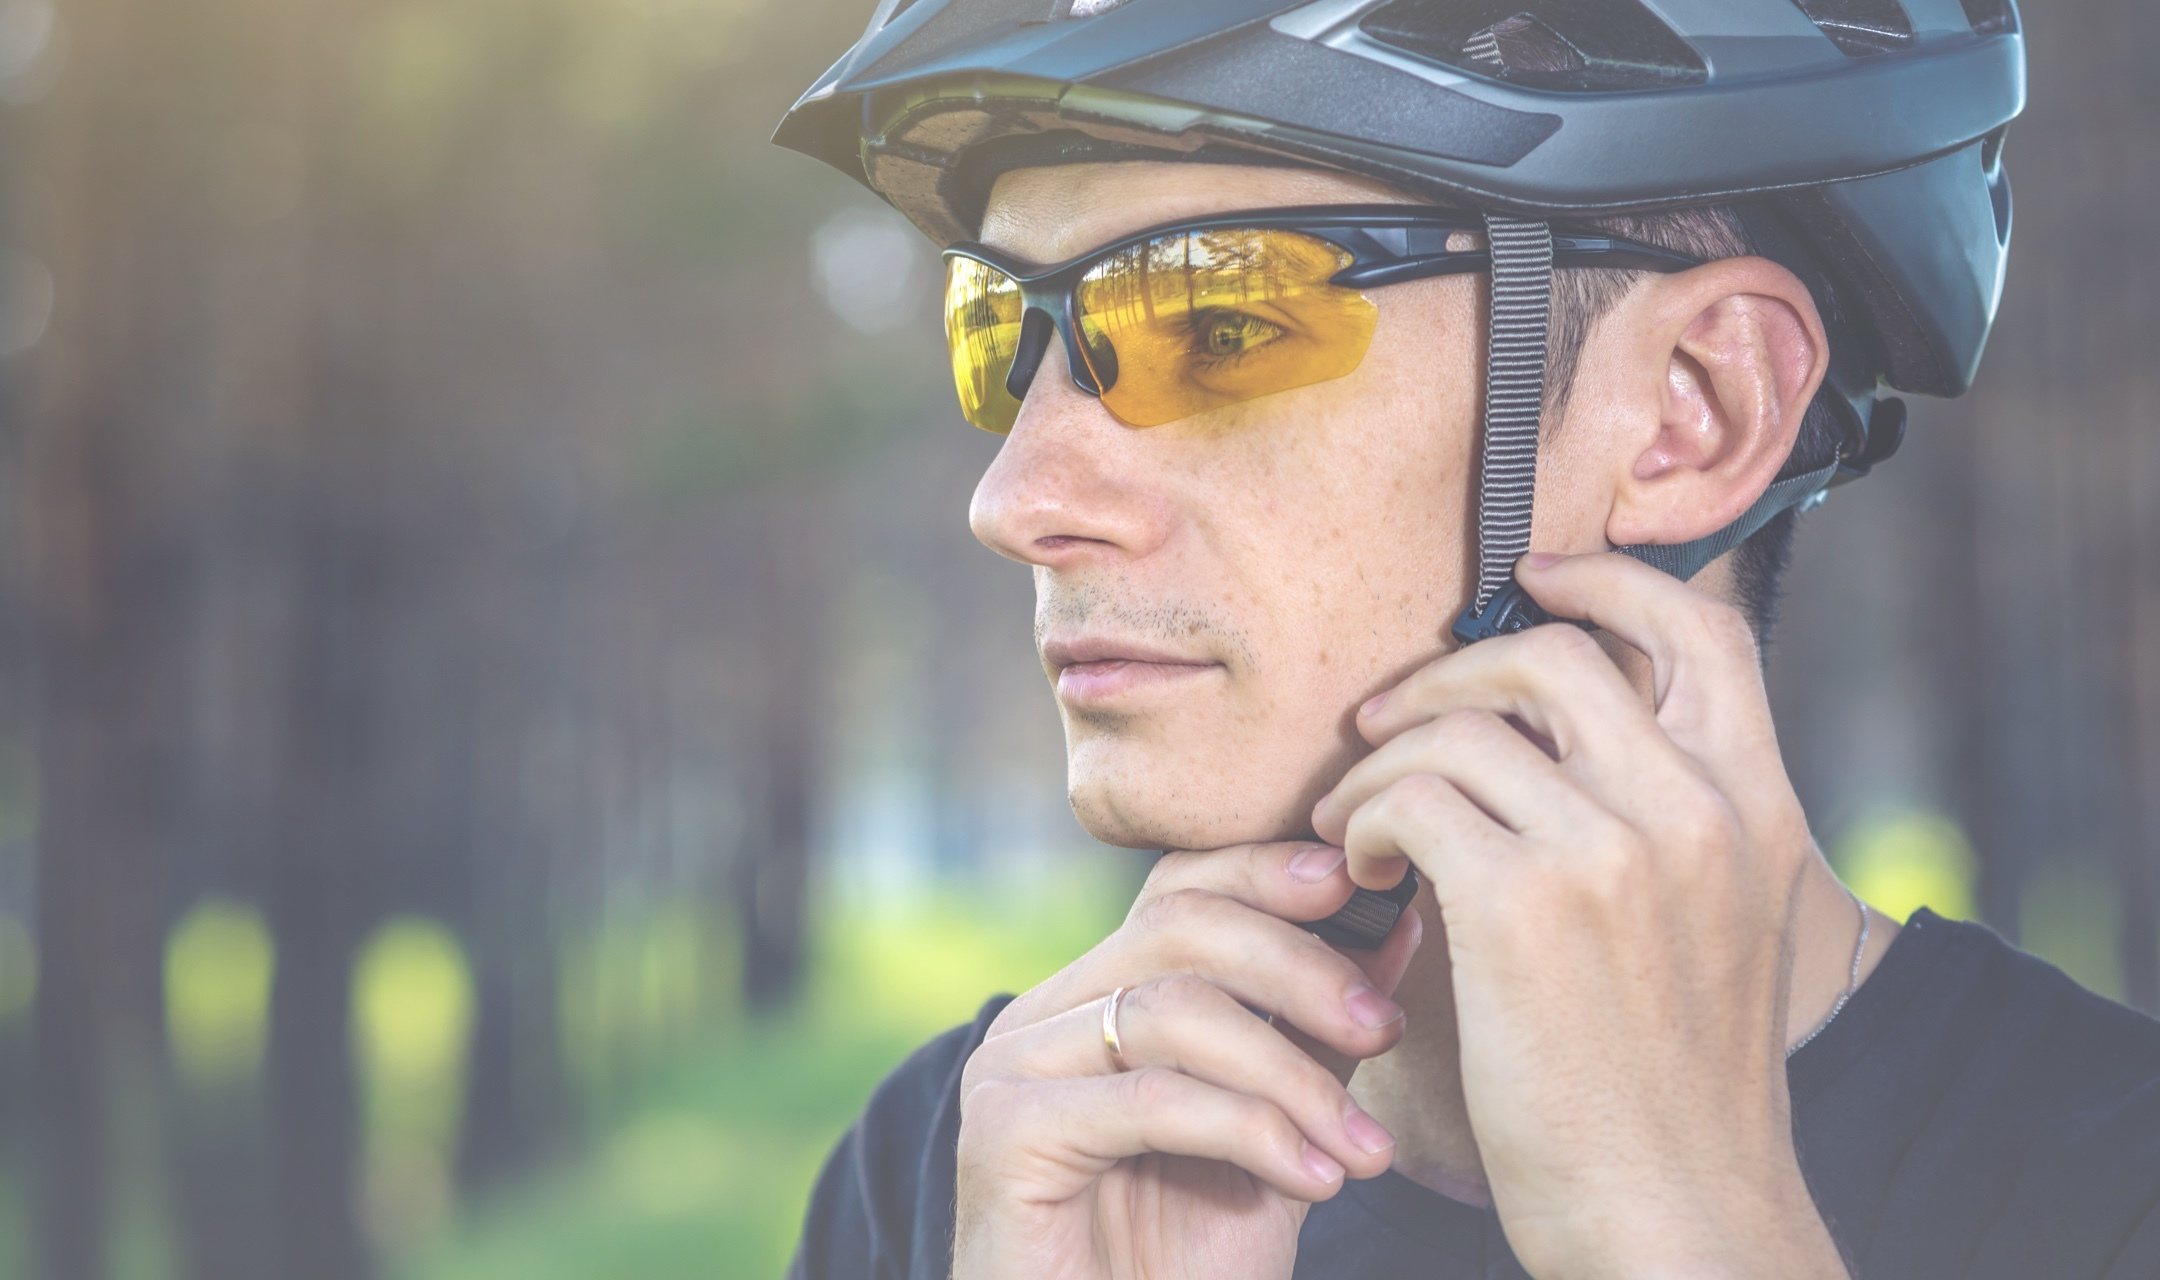 With cycle insurance from Sundays, you not only get comprehensive bike insurance but, you can also specify your cycling gear and accessories, including your helmet, up to a value of £10 000.